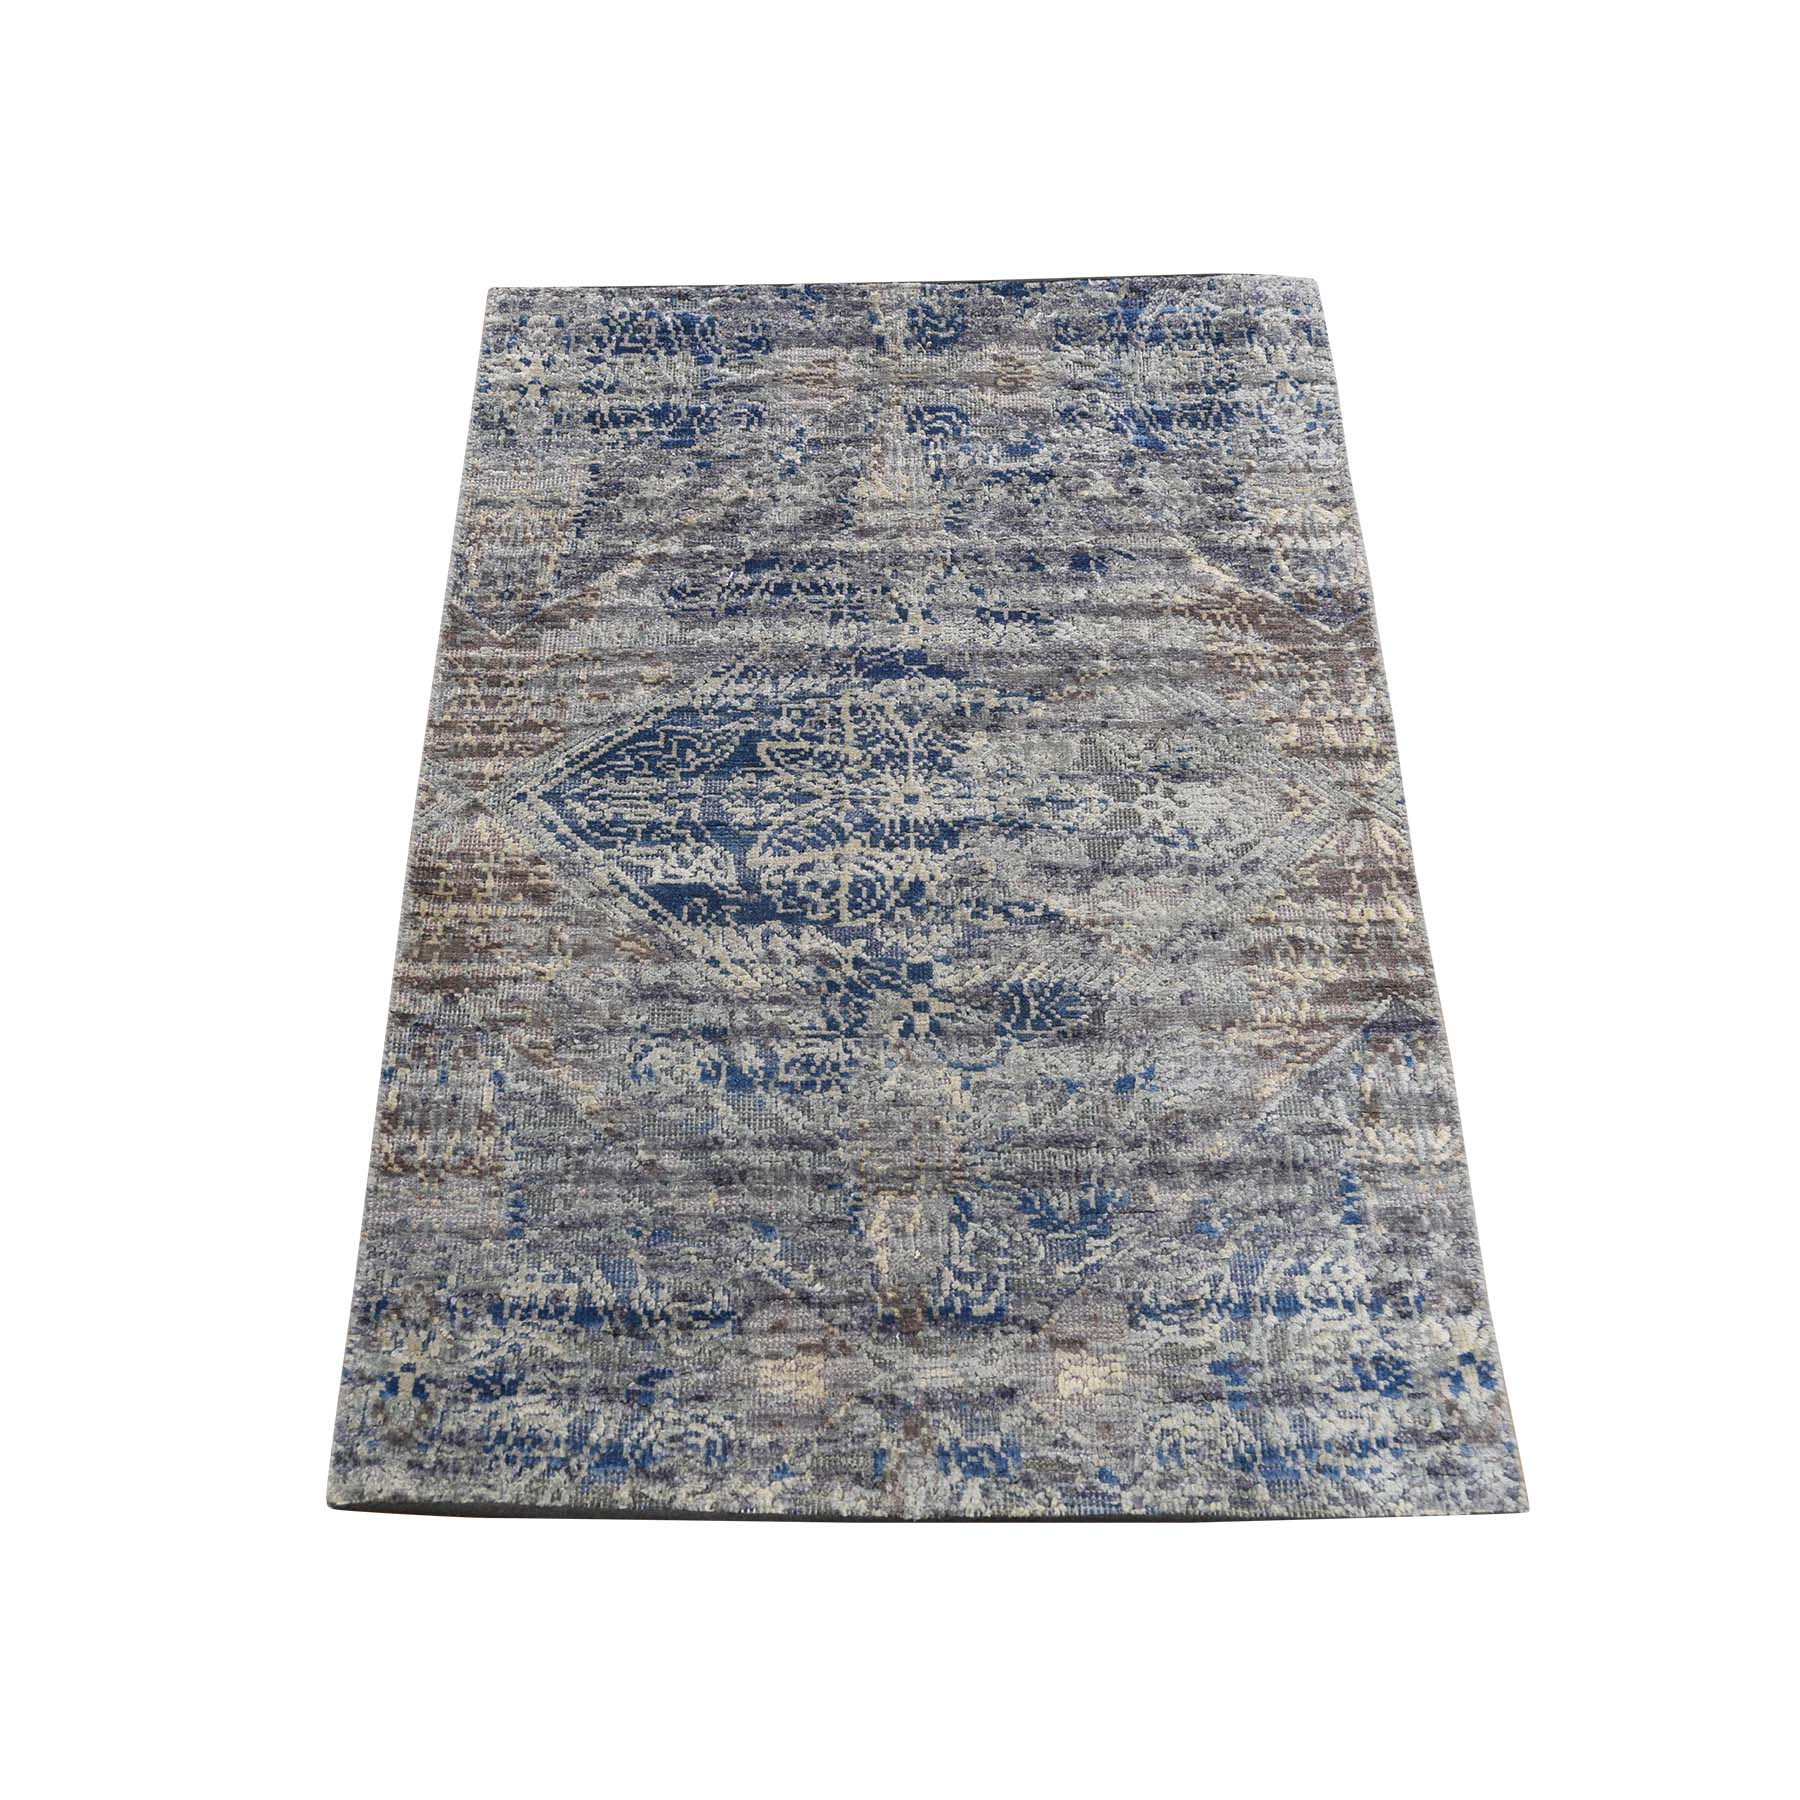 2'X3' Erased Rossets,Silk With Textured Wool Denim Blue Hand-Knotted Oriental Sample Rug moadd8c7